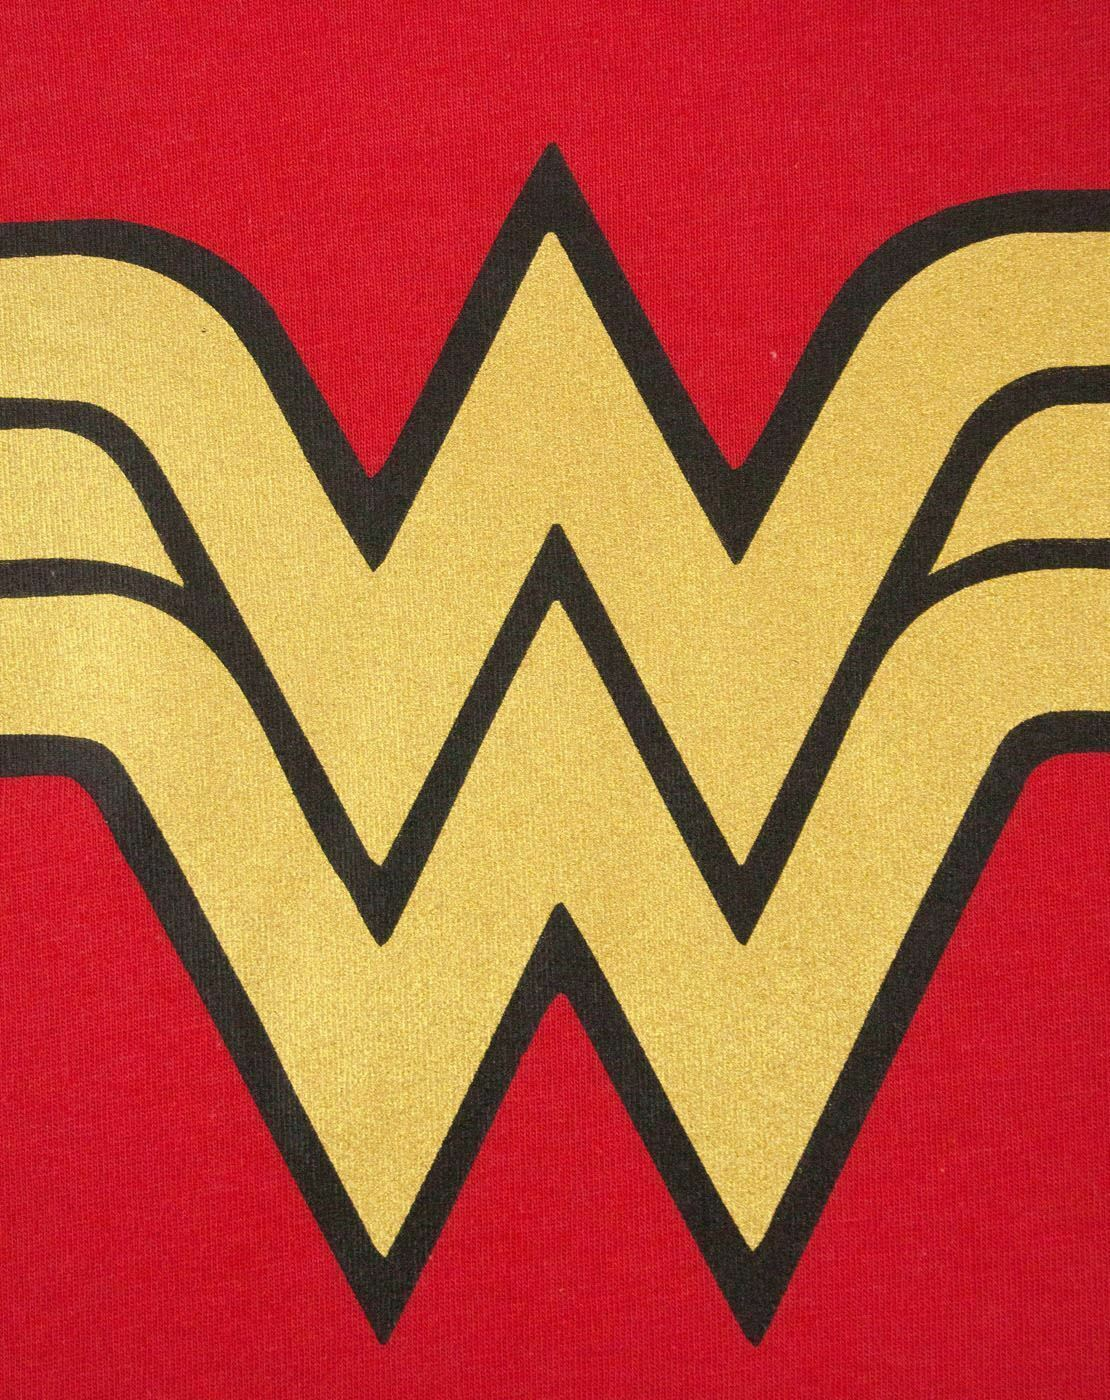 Wonder-Woman-DC-Comics-Metallic-Gold-Logo-Women-039-s-Red-Superhero-T-Shirt thumbnail 12